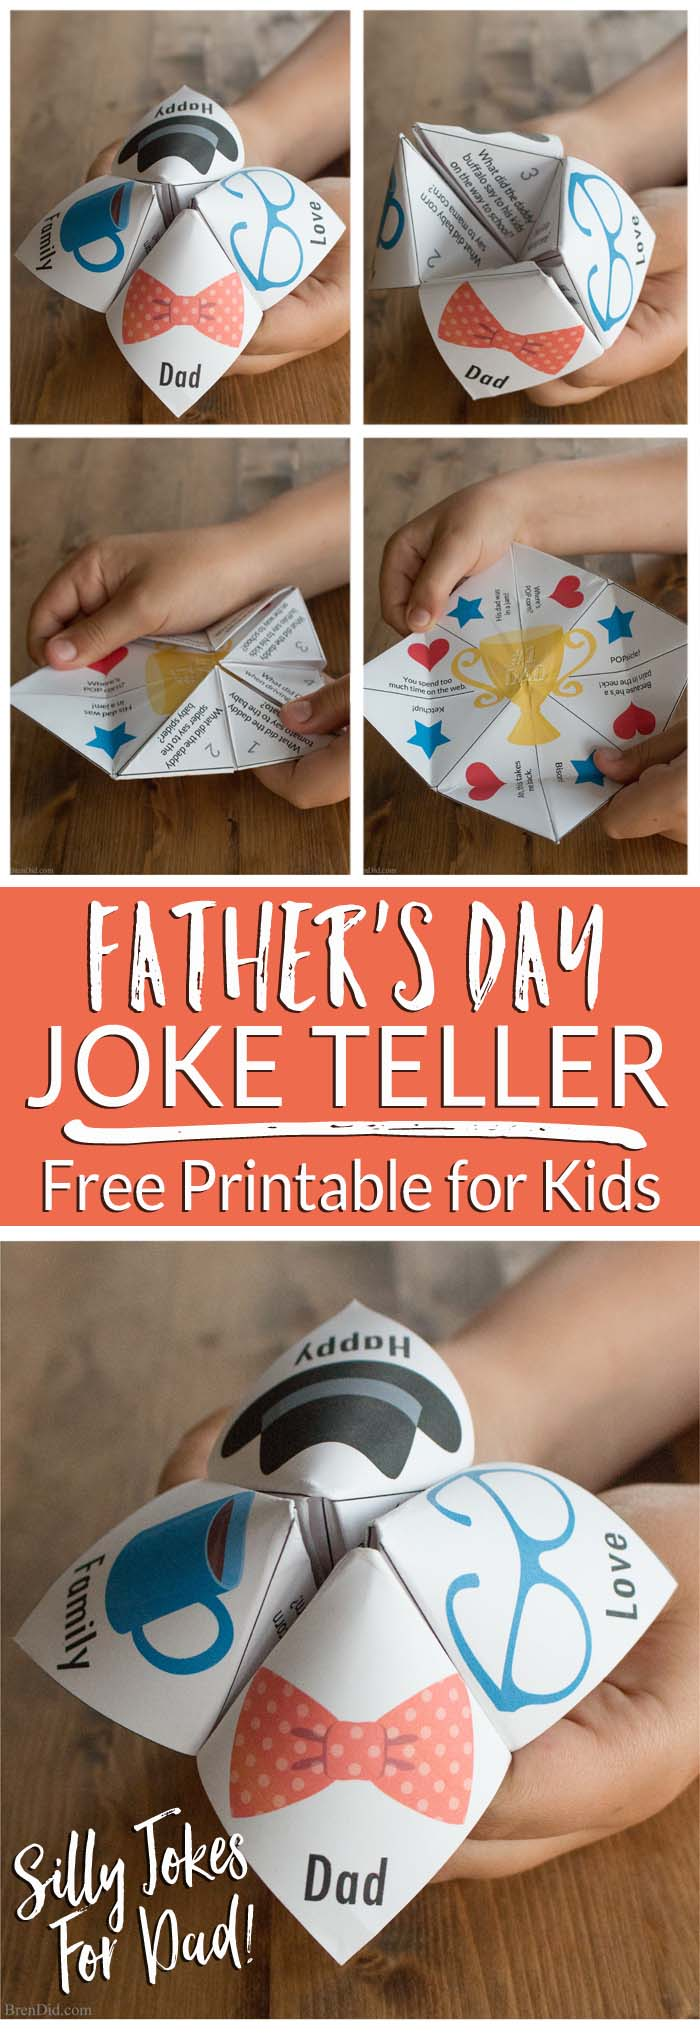 Surprise Dad with a free printable joke teller filled with funny Father's Day jokes   Easy Father's Day Craft   Dad jokes for kids   Father's Day Gift